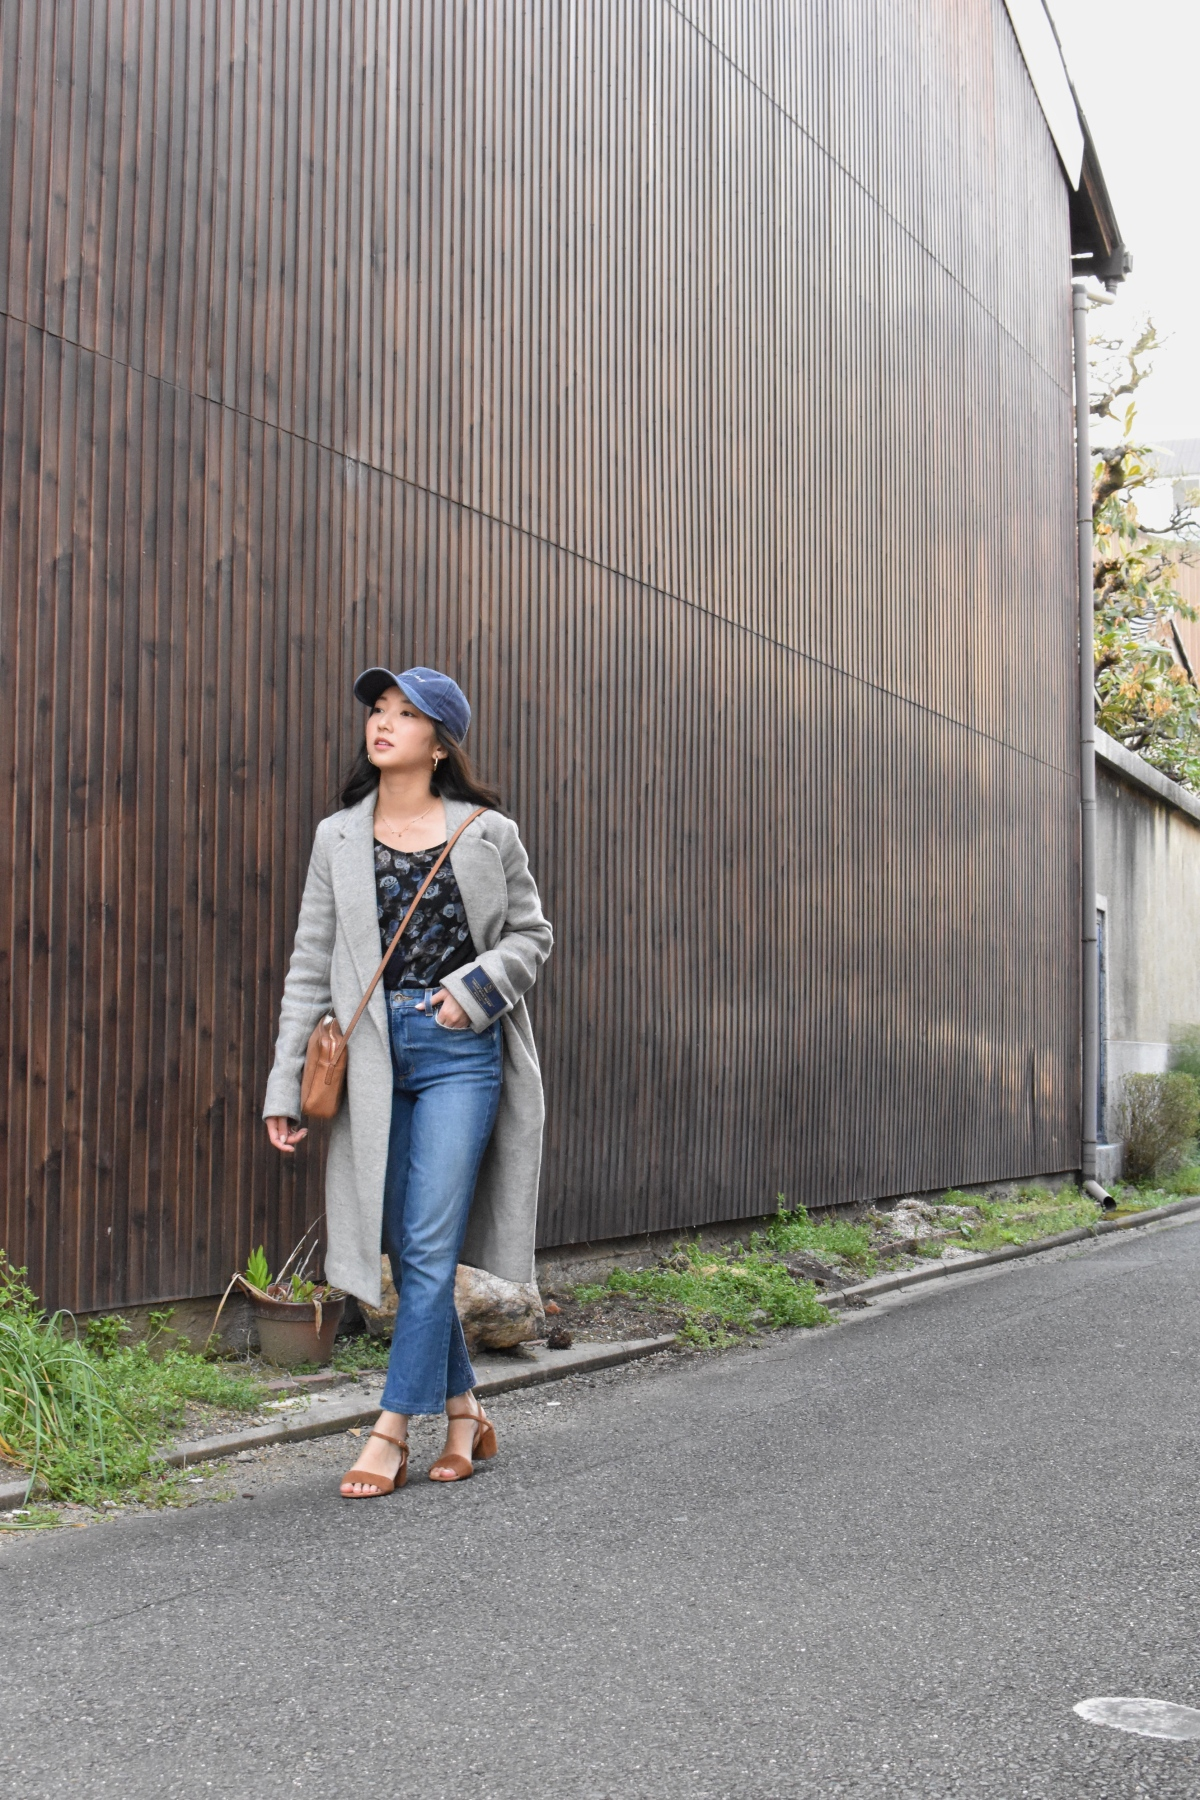 Koenji, Japan, ootd, casual chic look, minimal, simple style, strap kitten heels, paige jeans, straight legged jeans